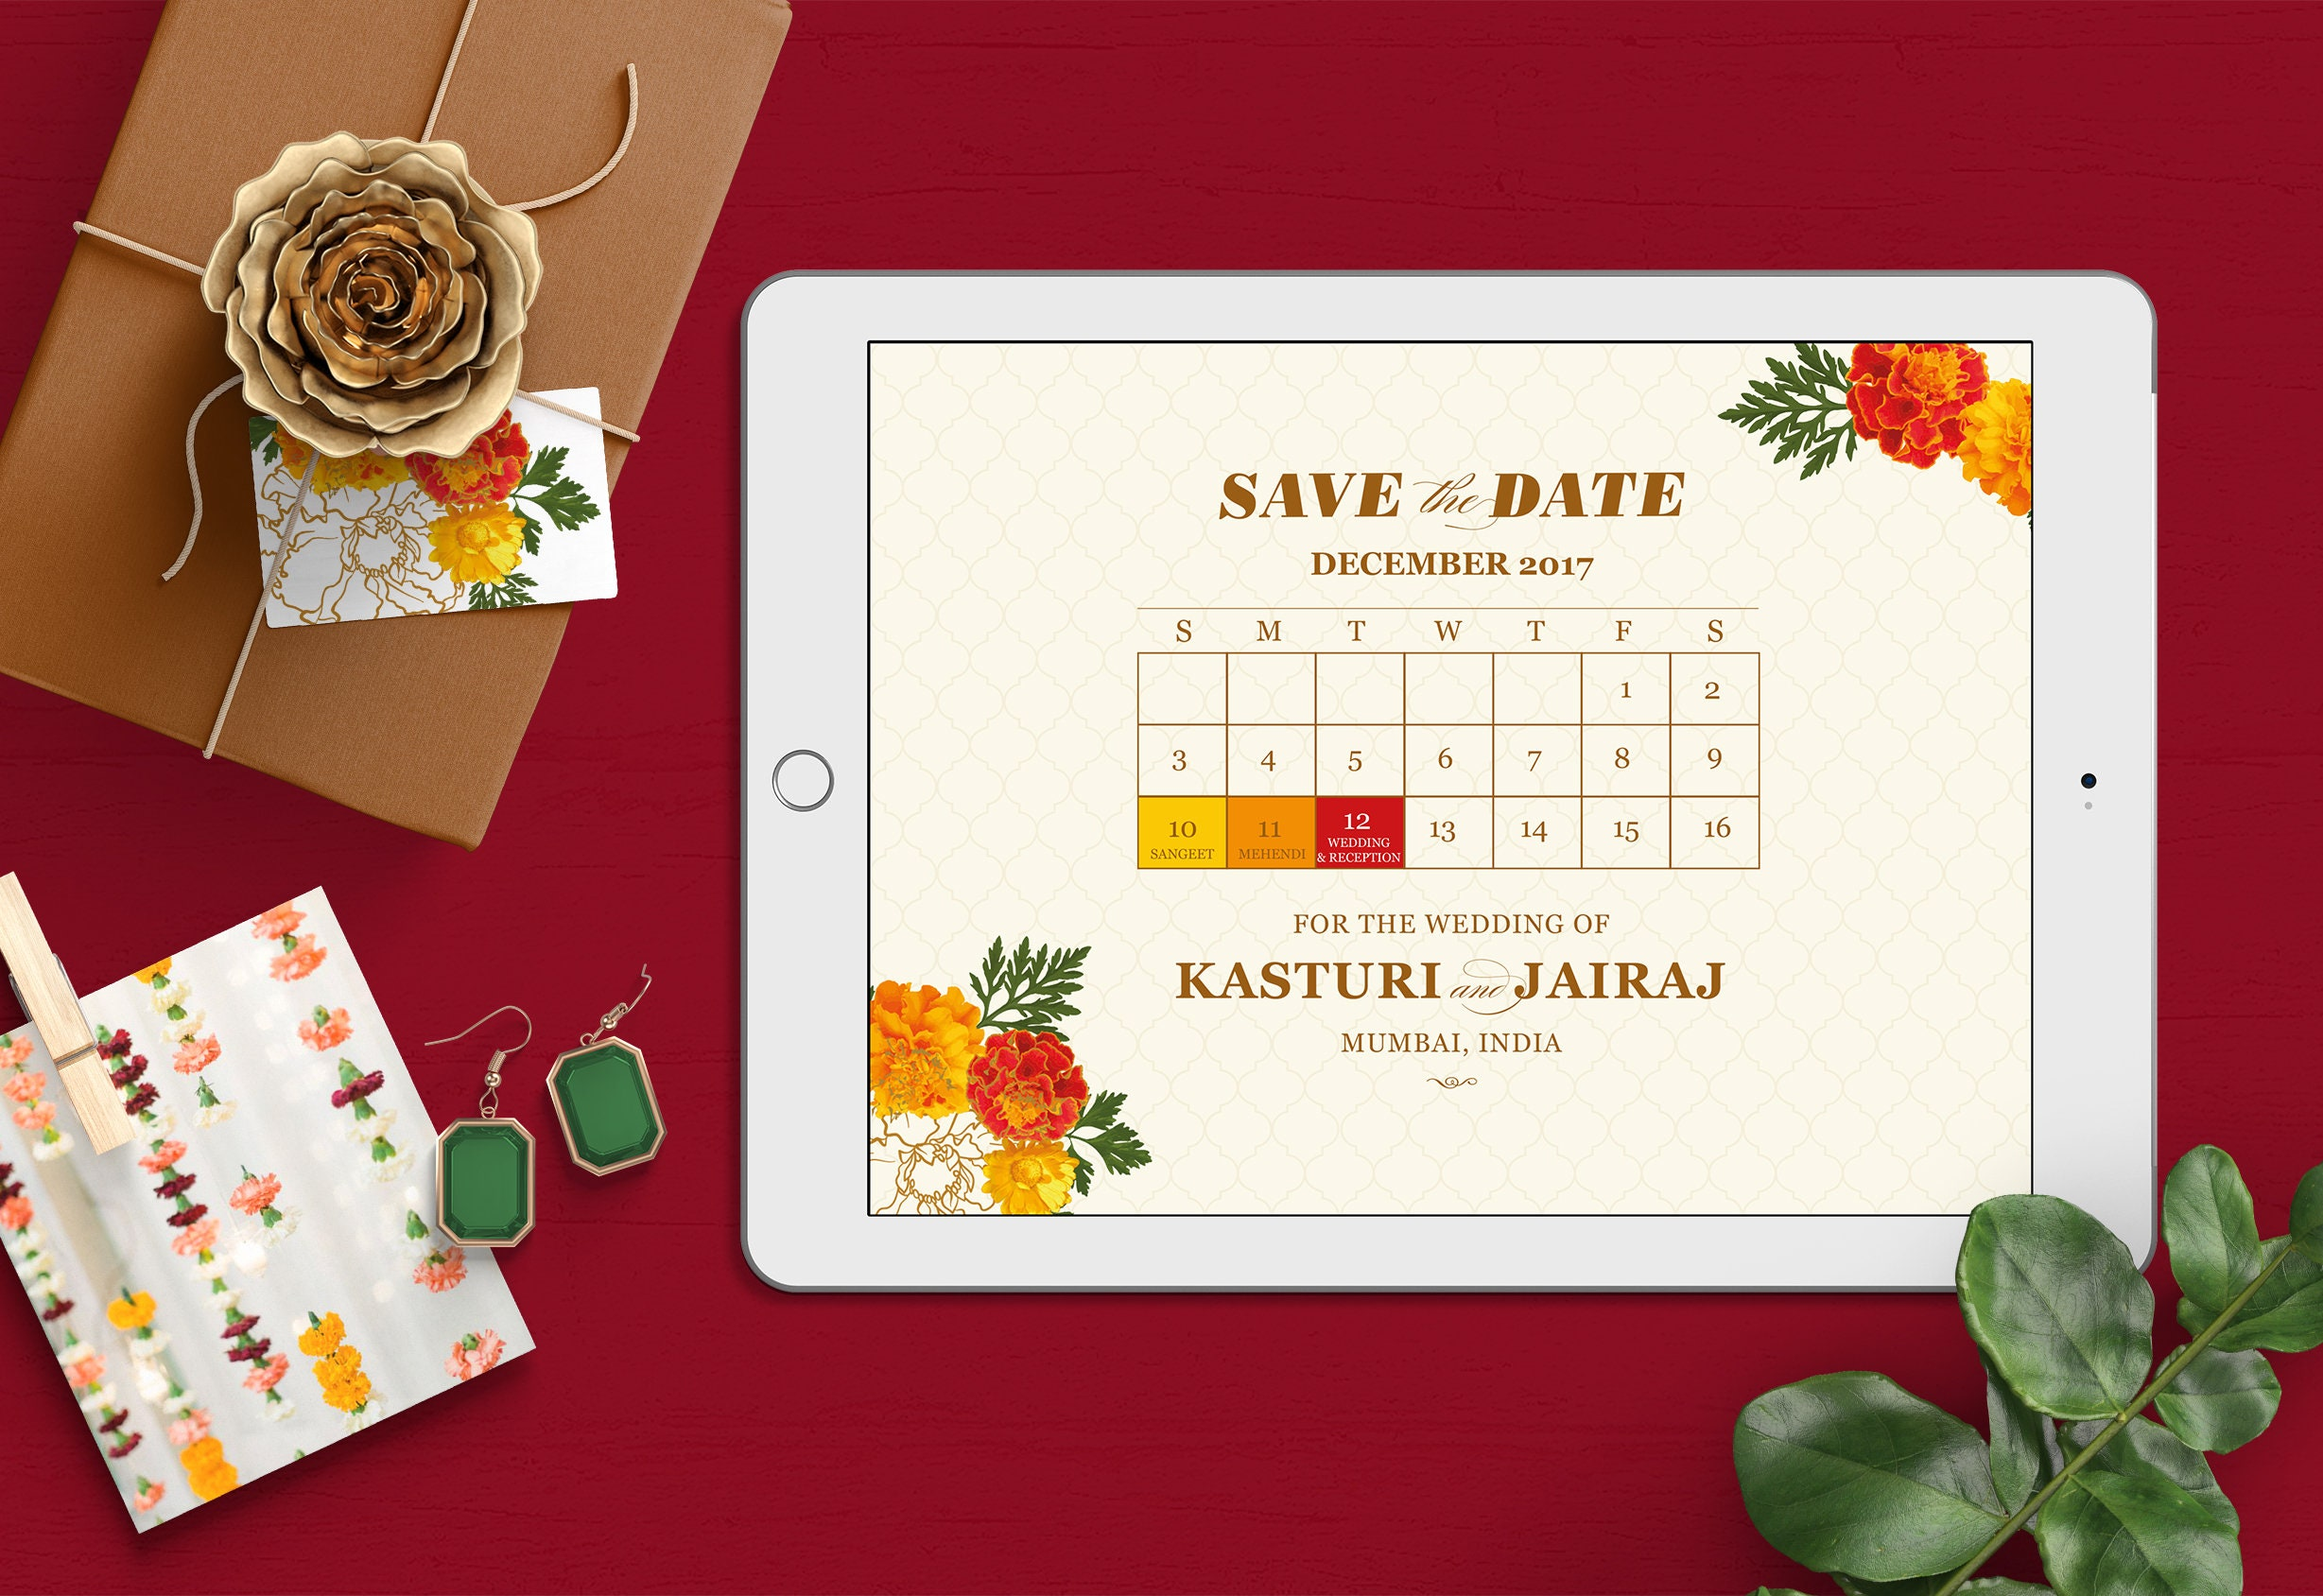 Digital Save the Date Marigold Brass Bell Indian Wedding | Etsy